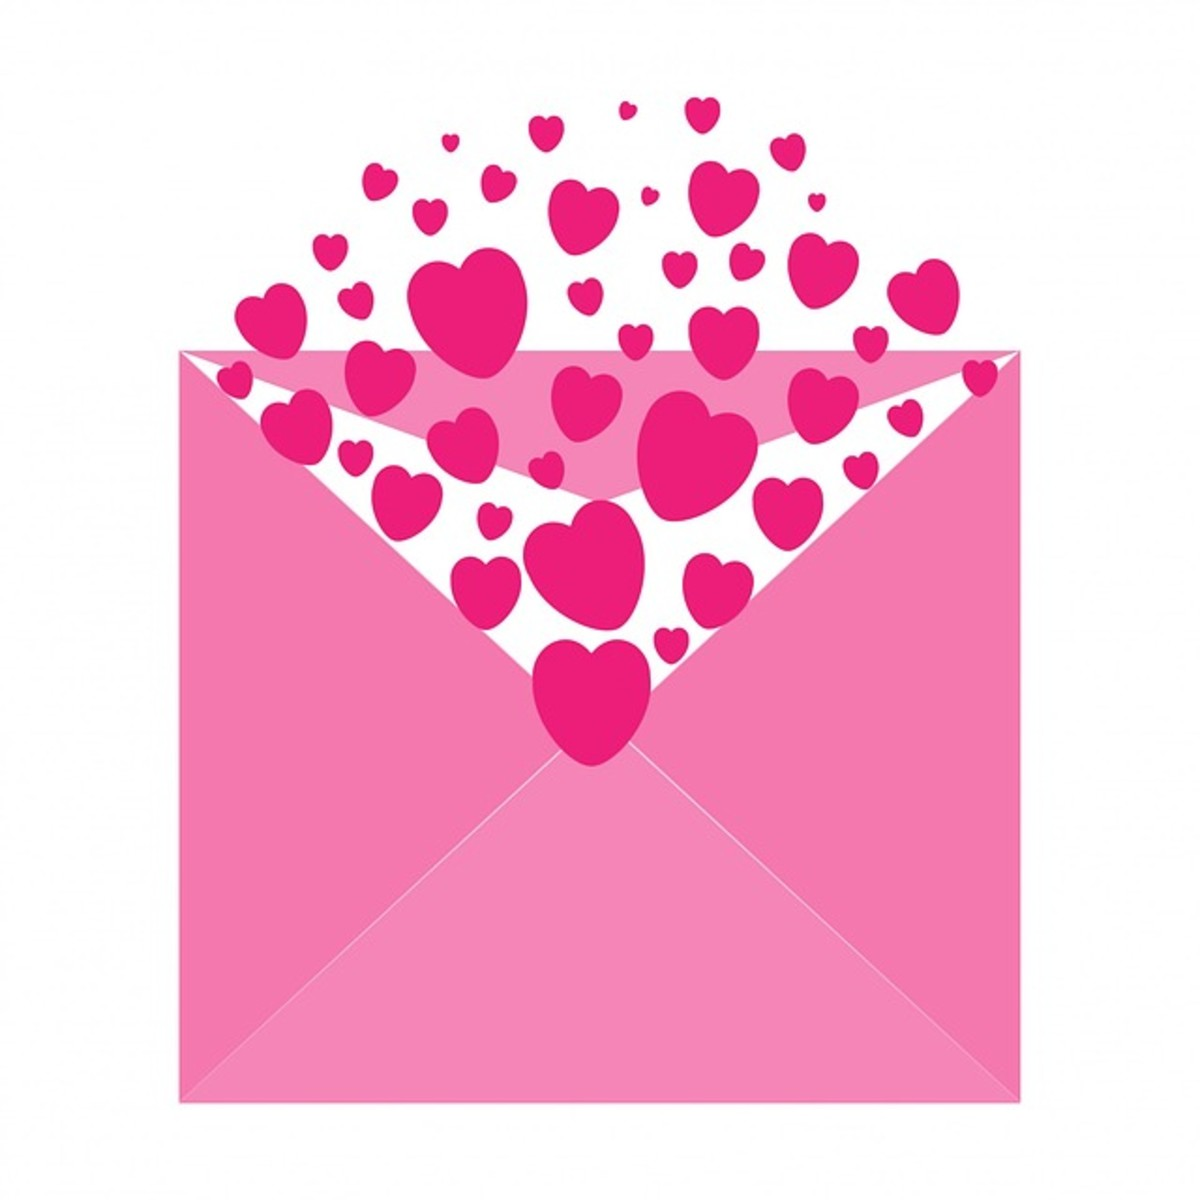 Hearts in an Envelope